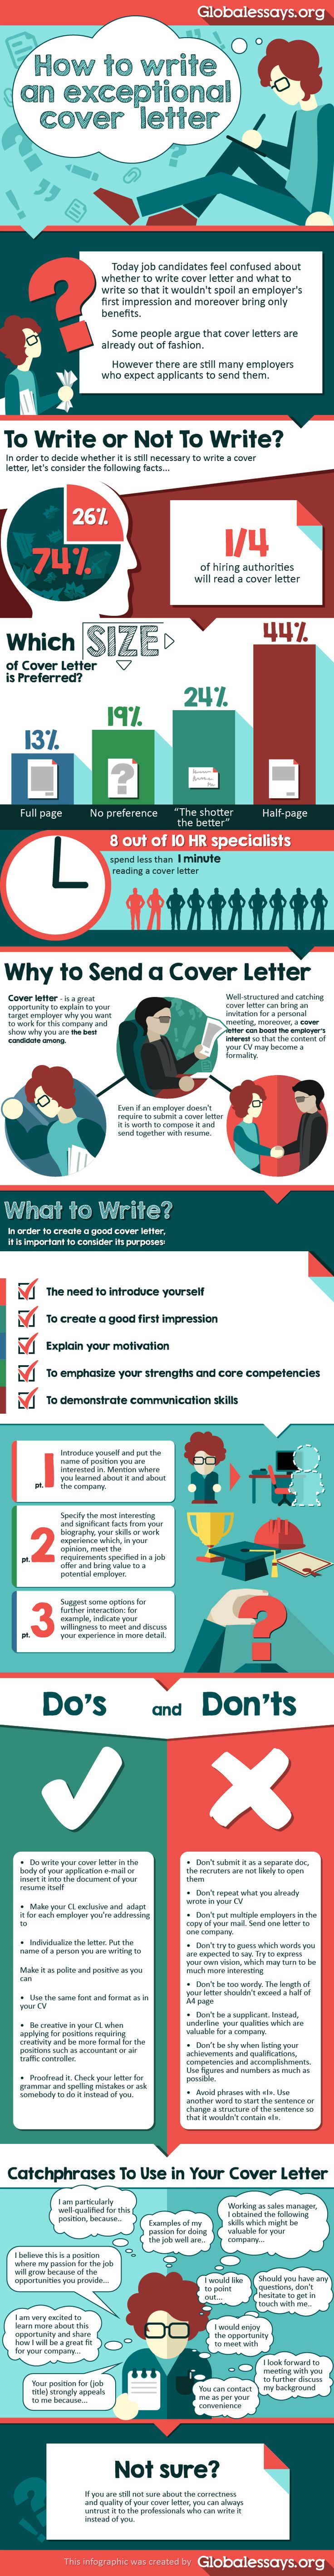 how to write an exceptional cover letter by global essays via tipsographic - How To Make Cover Letter Resume